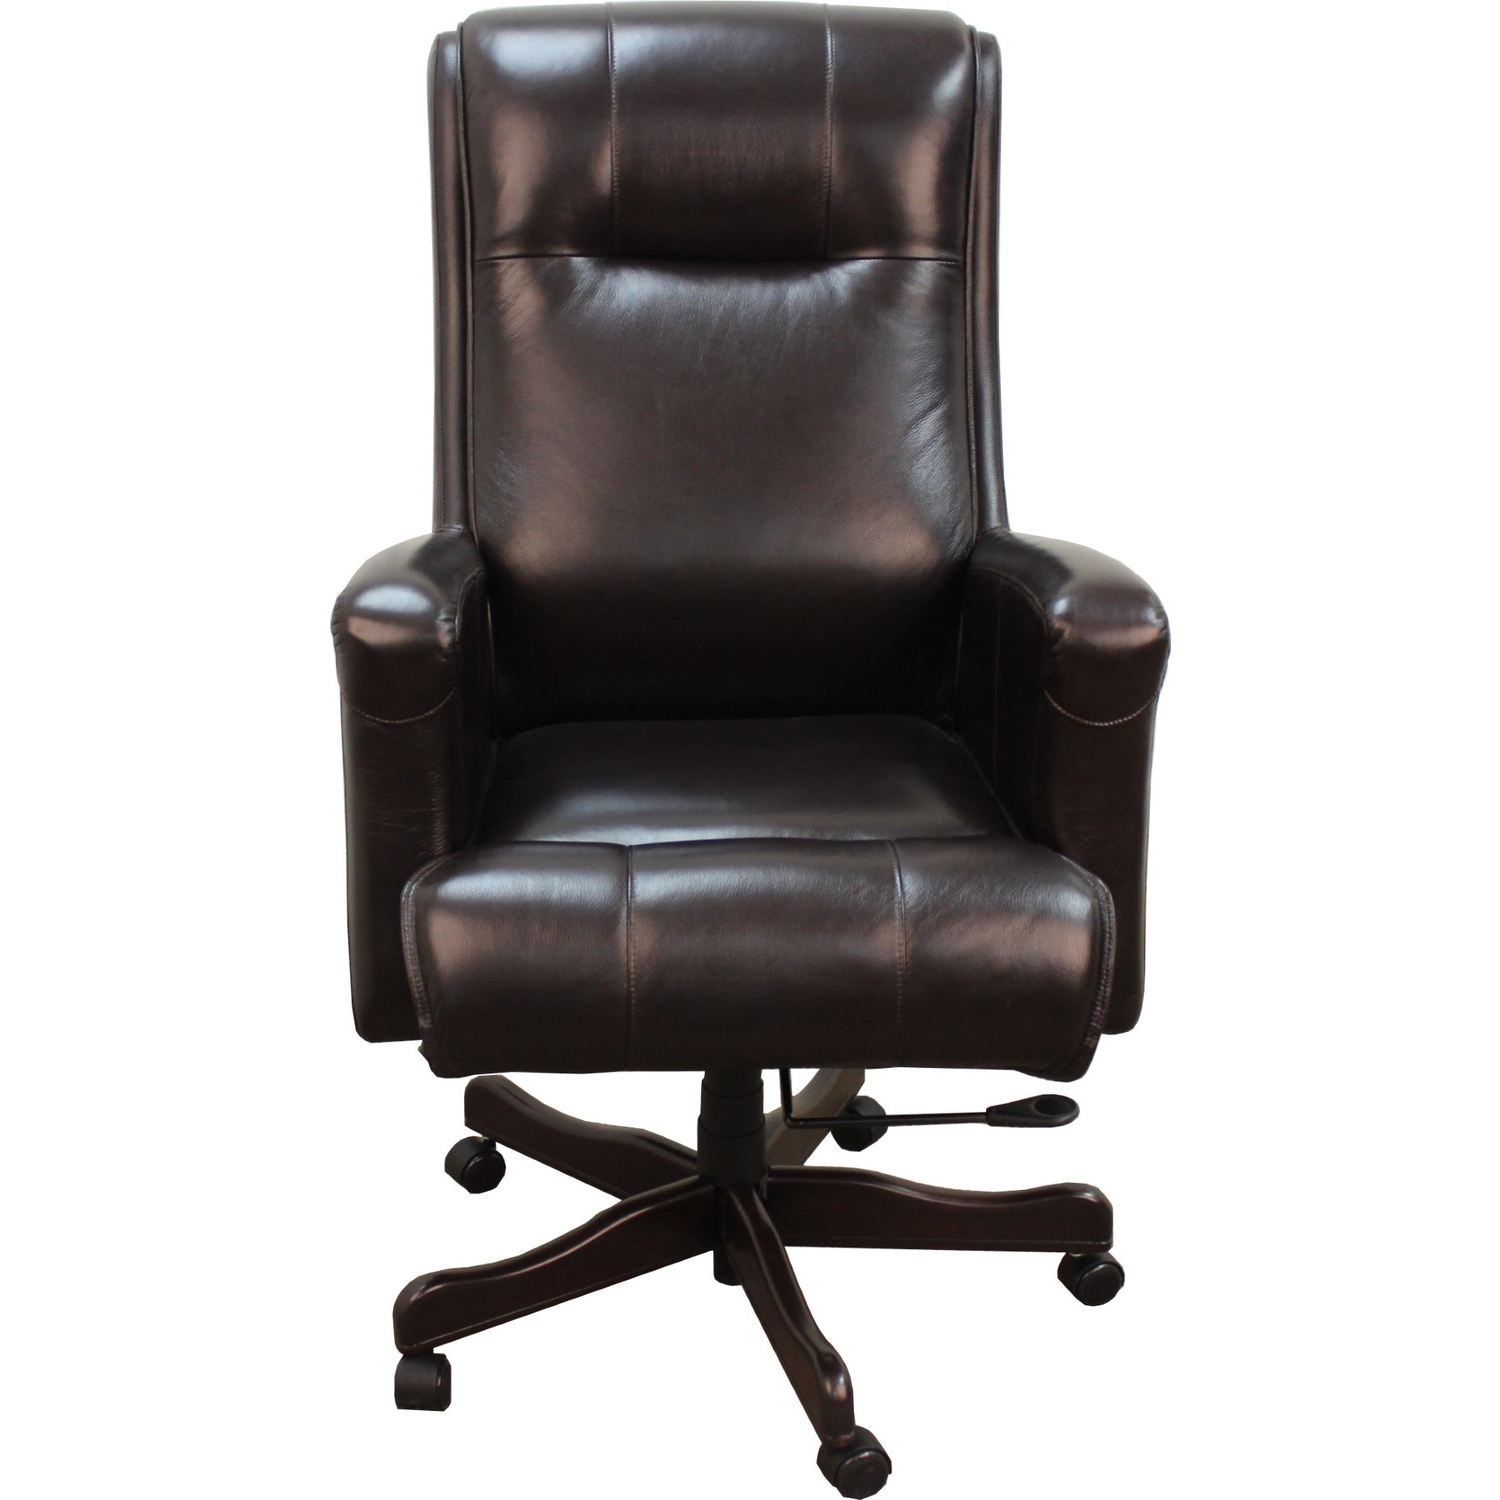 High End Executive Office Chairs Intended For Well Liked Chair : La Z Boy Executive Leather Office Chair Voyager 92D (View 11 of 20)